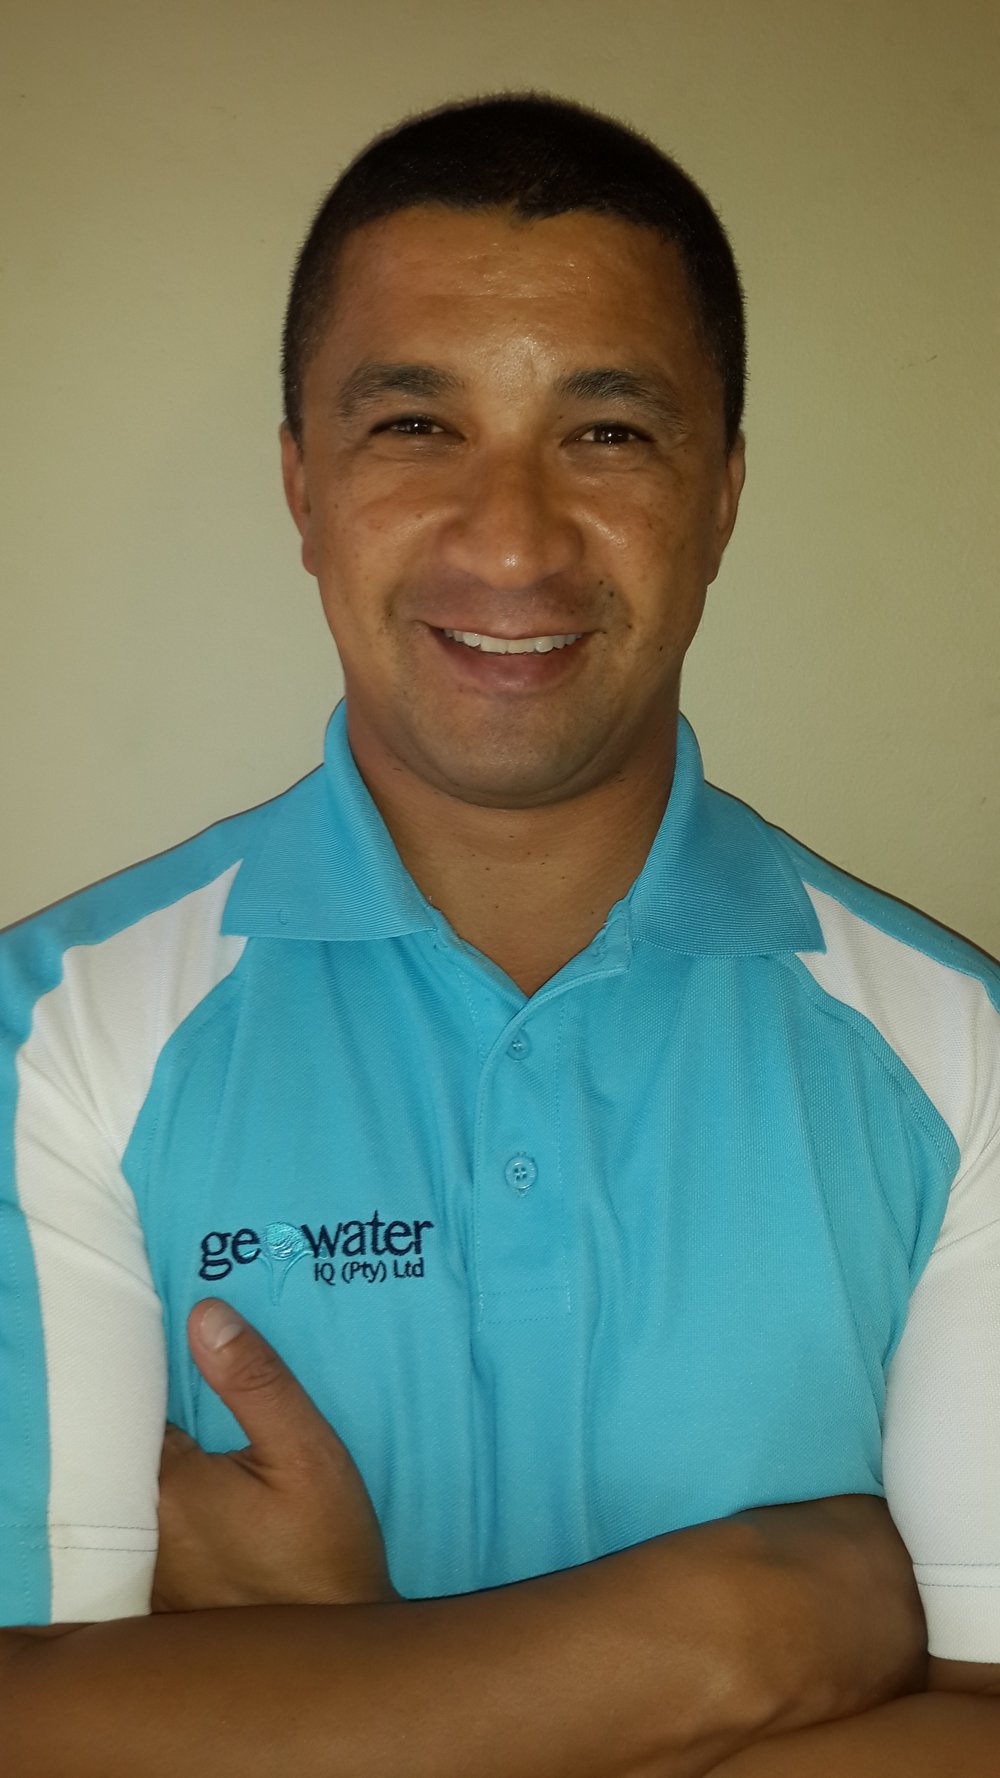 Founder of Geowater IQ Regan Rose has joined JG Afrika's groundwater team in KwaZulu-Natal.